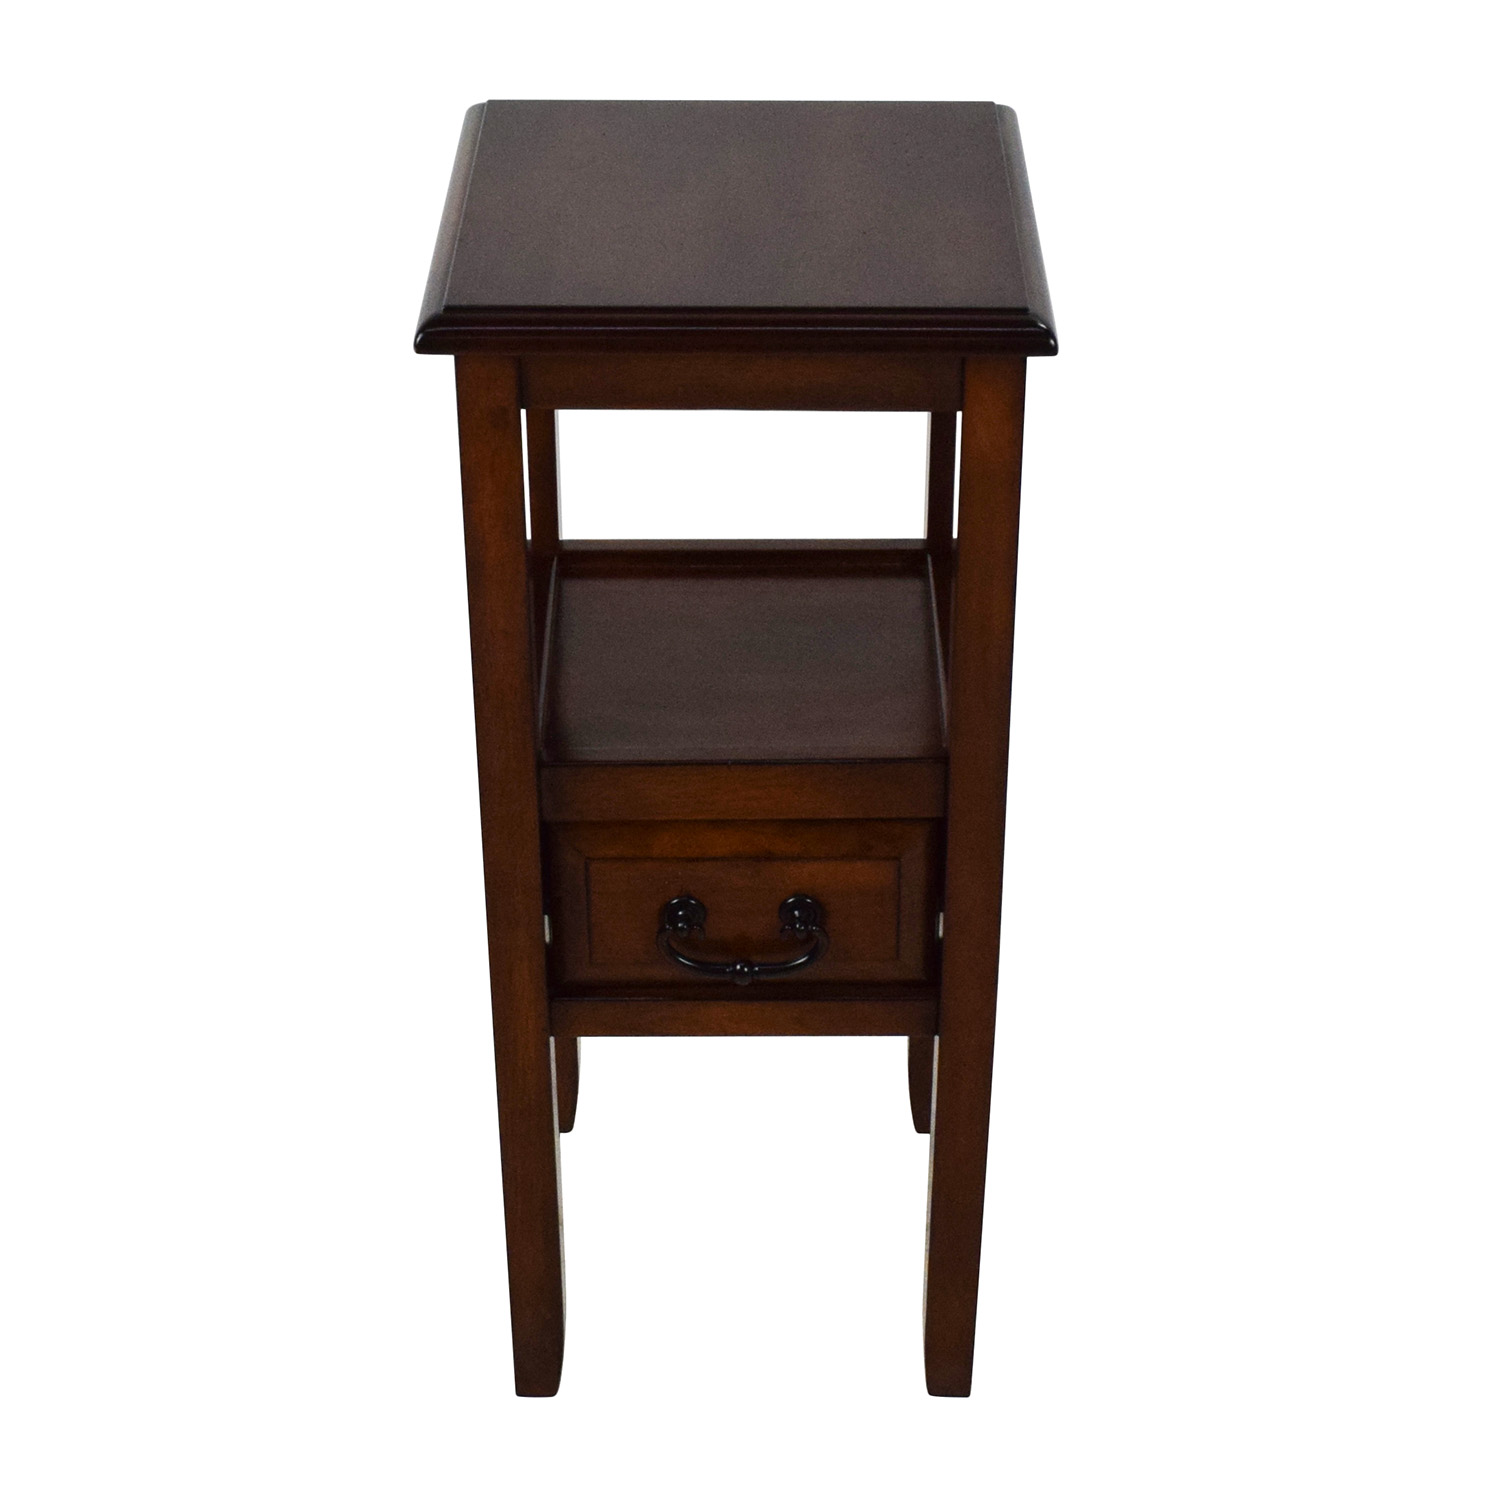 Beautiful ... Pier 1 Imports Pier 1 Single Drawer Nightstand End Tables ...